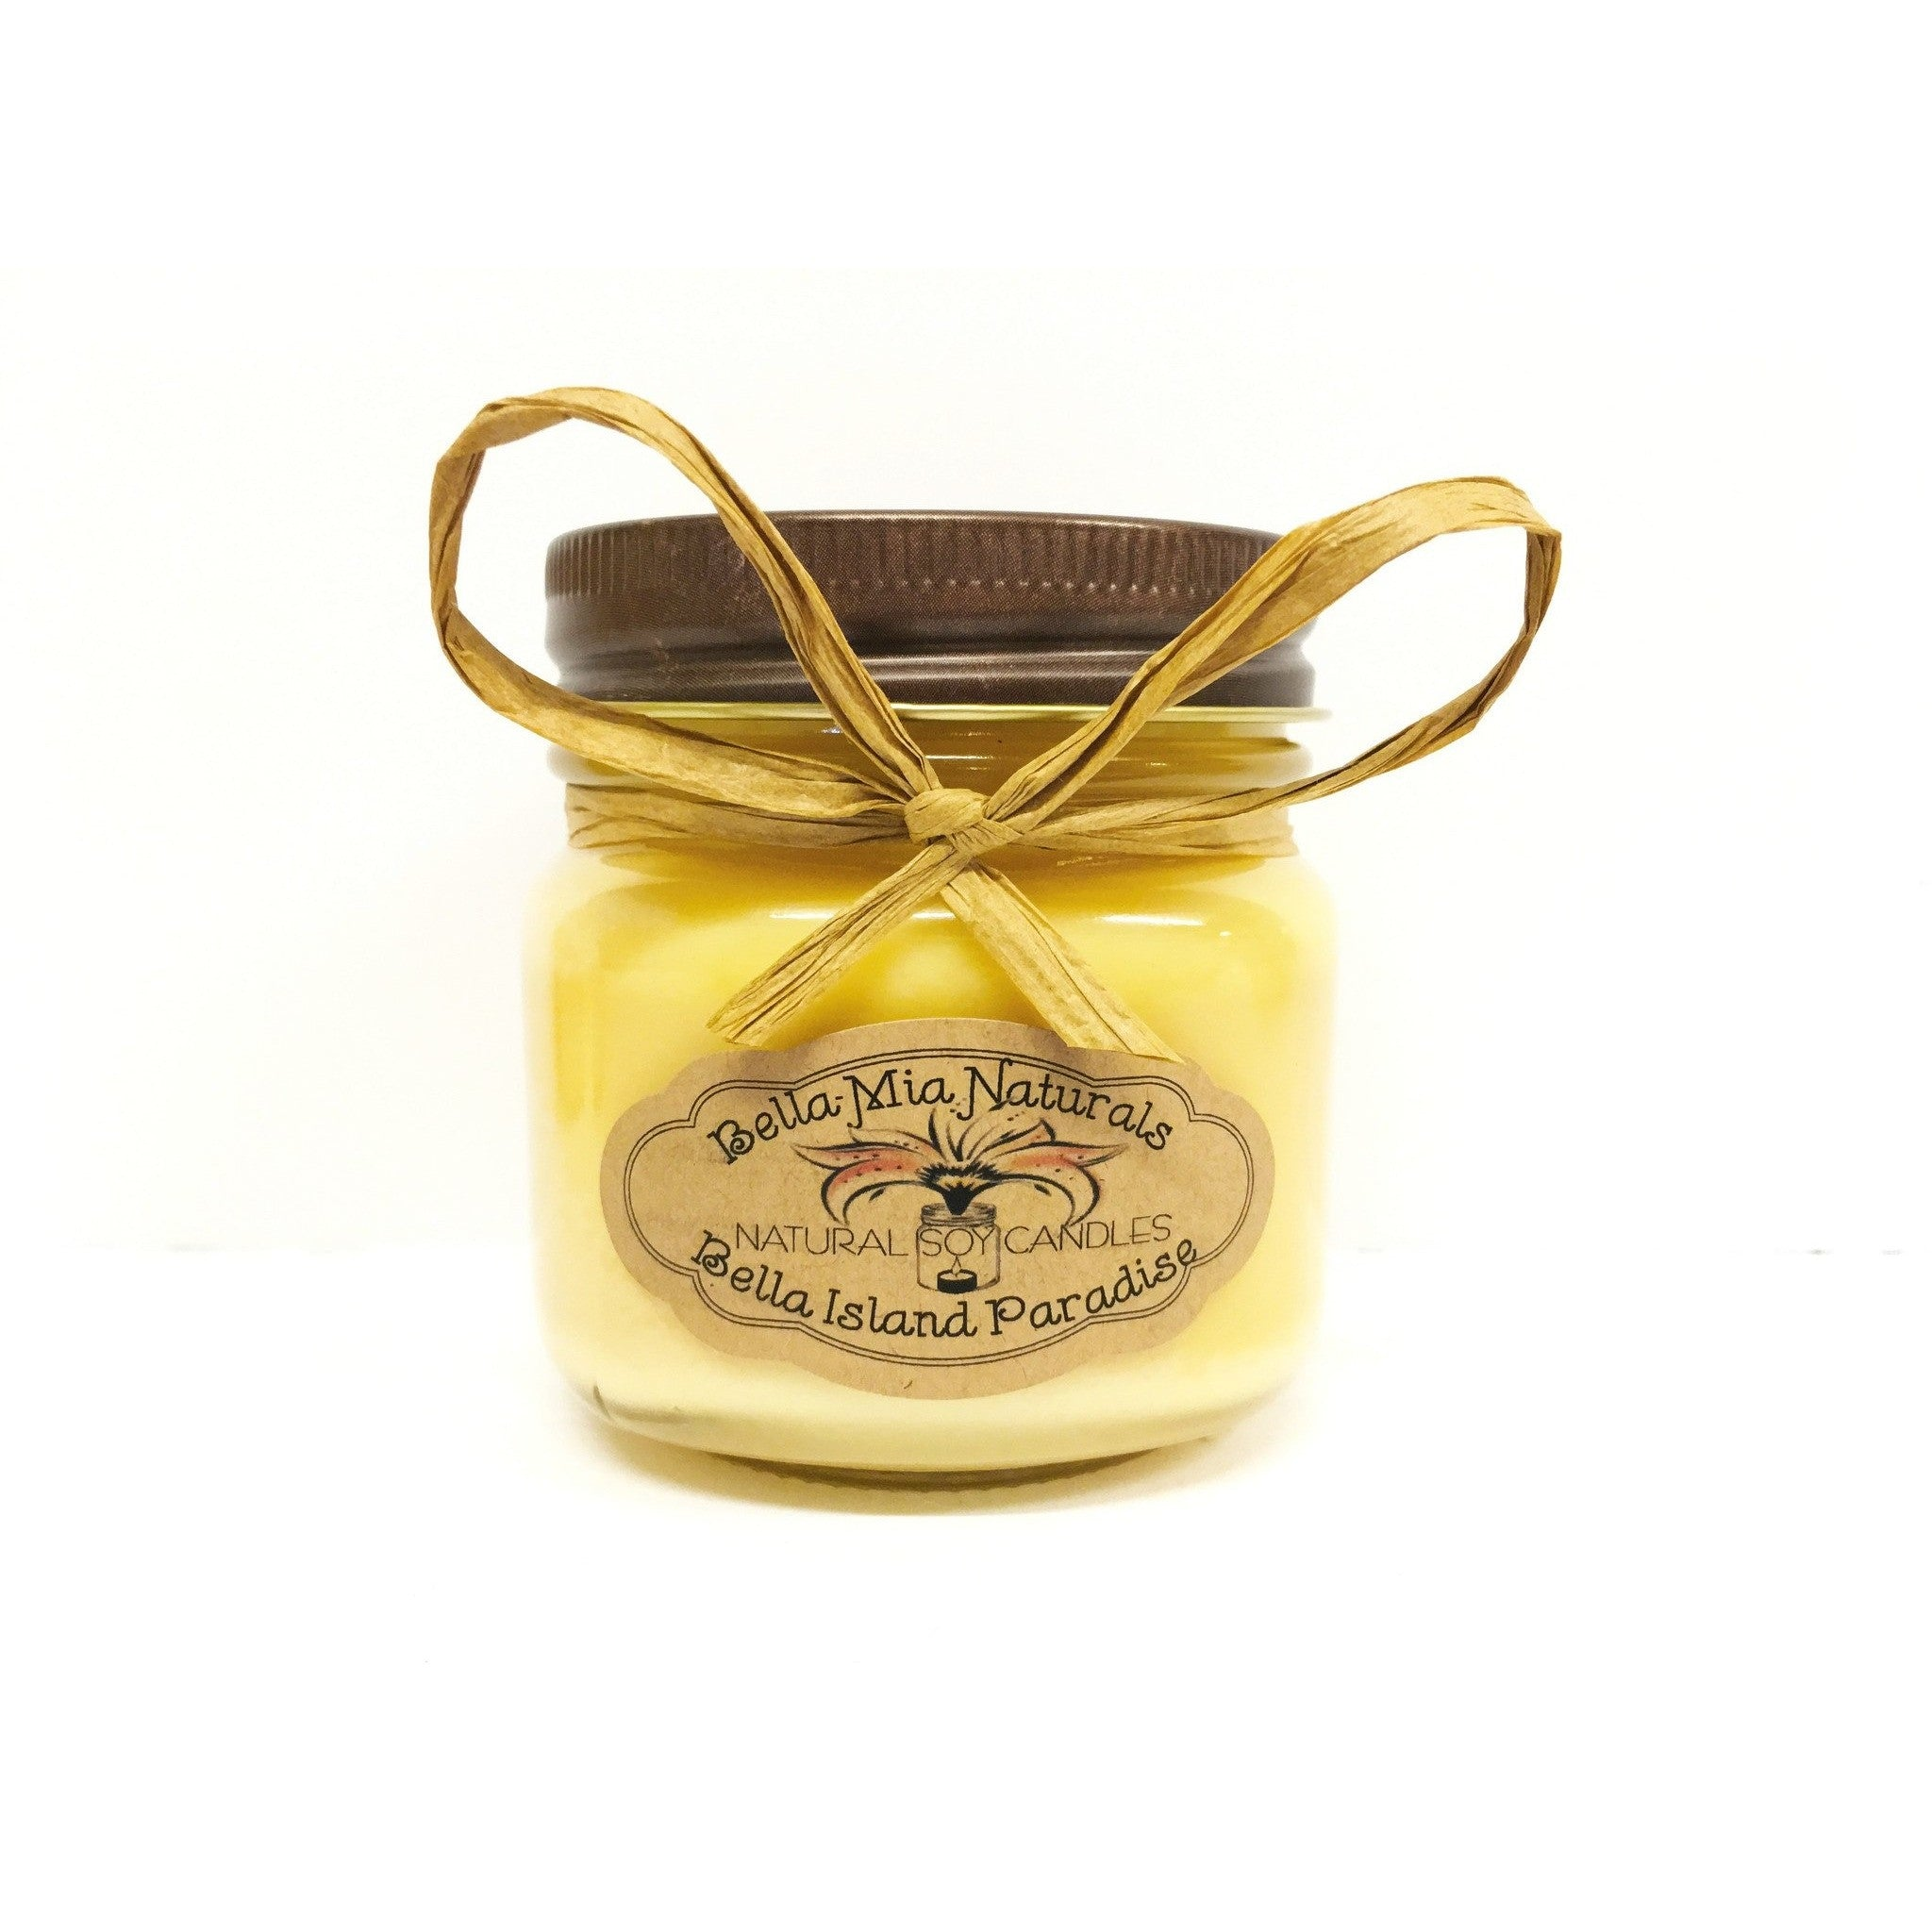 Bella Island Paradise Natural Hand Poured Soy Candles - Half-Pint - Bella-Mia Naturals All Natural Soy Candles & Lip Balms - 3